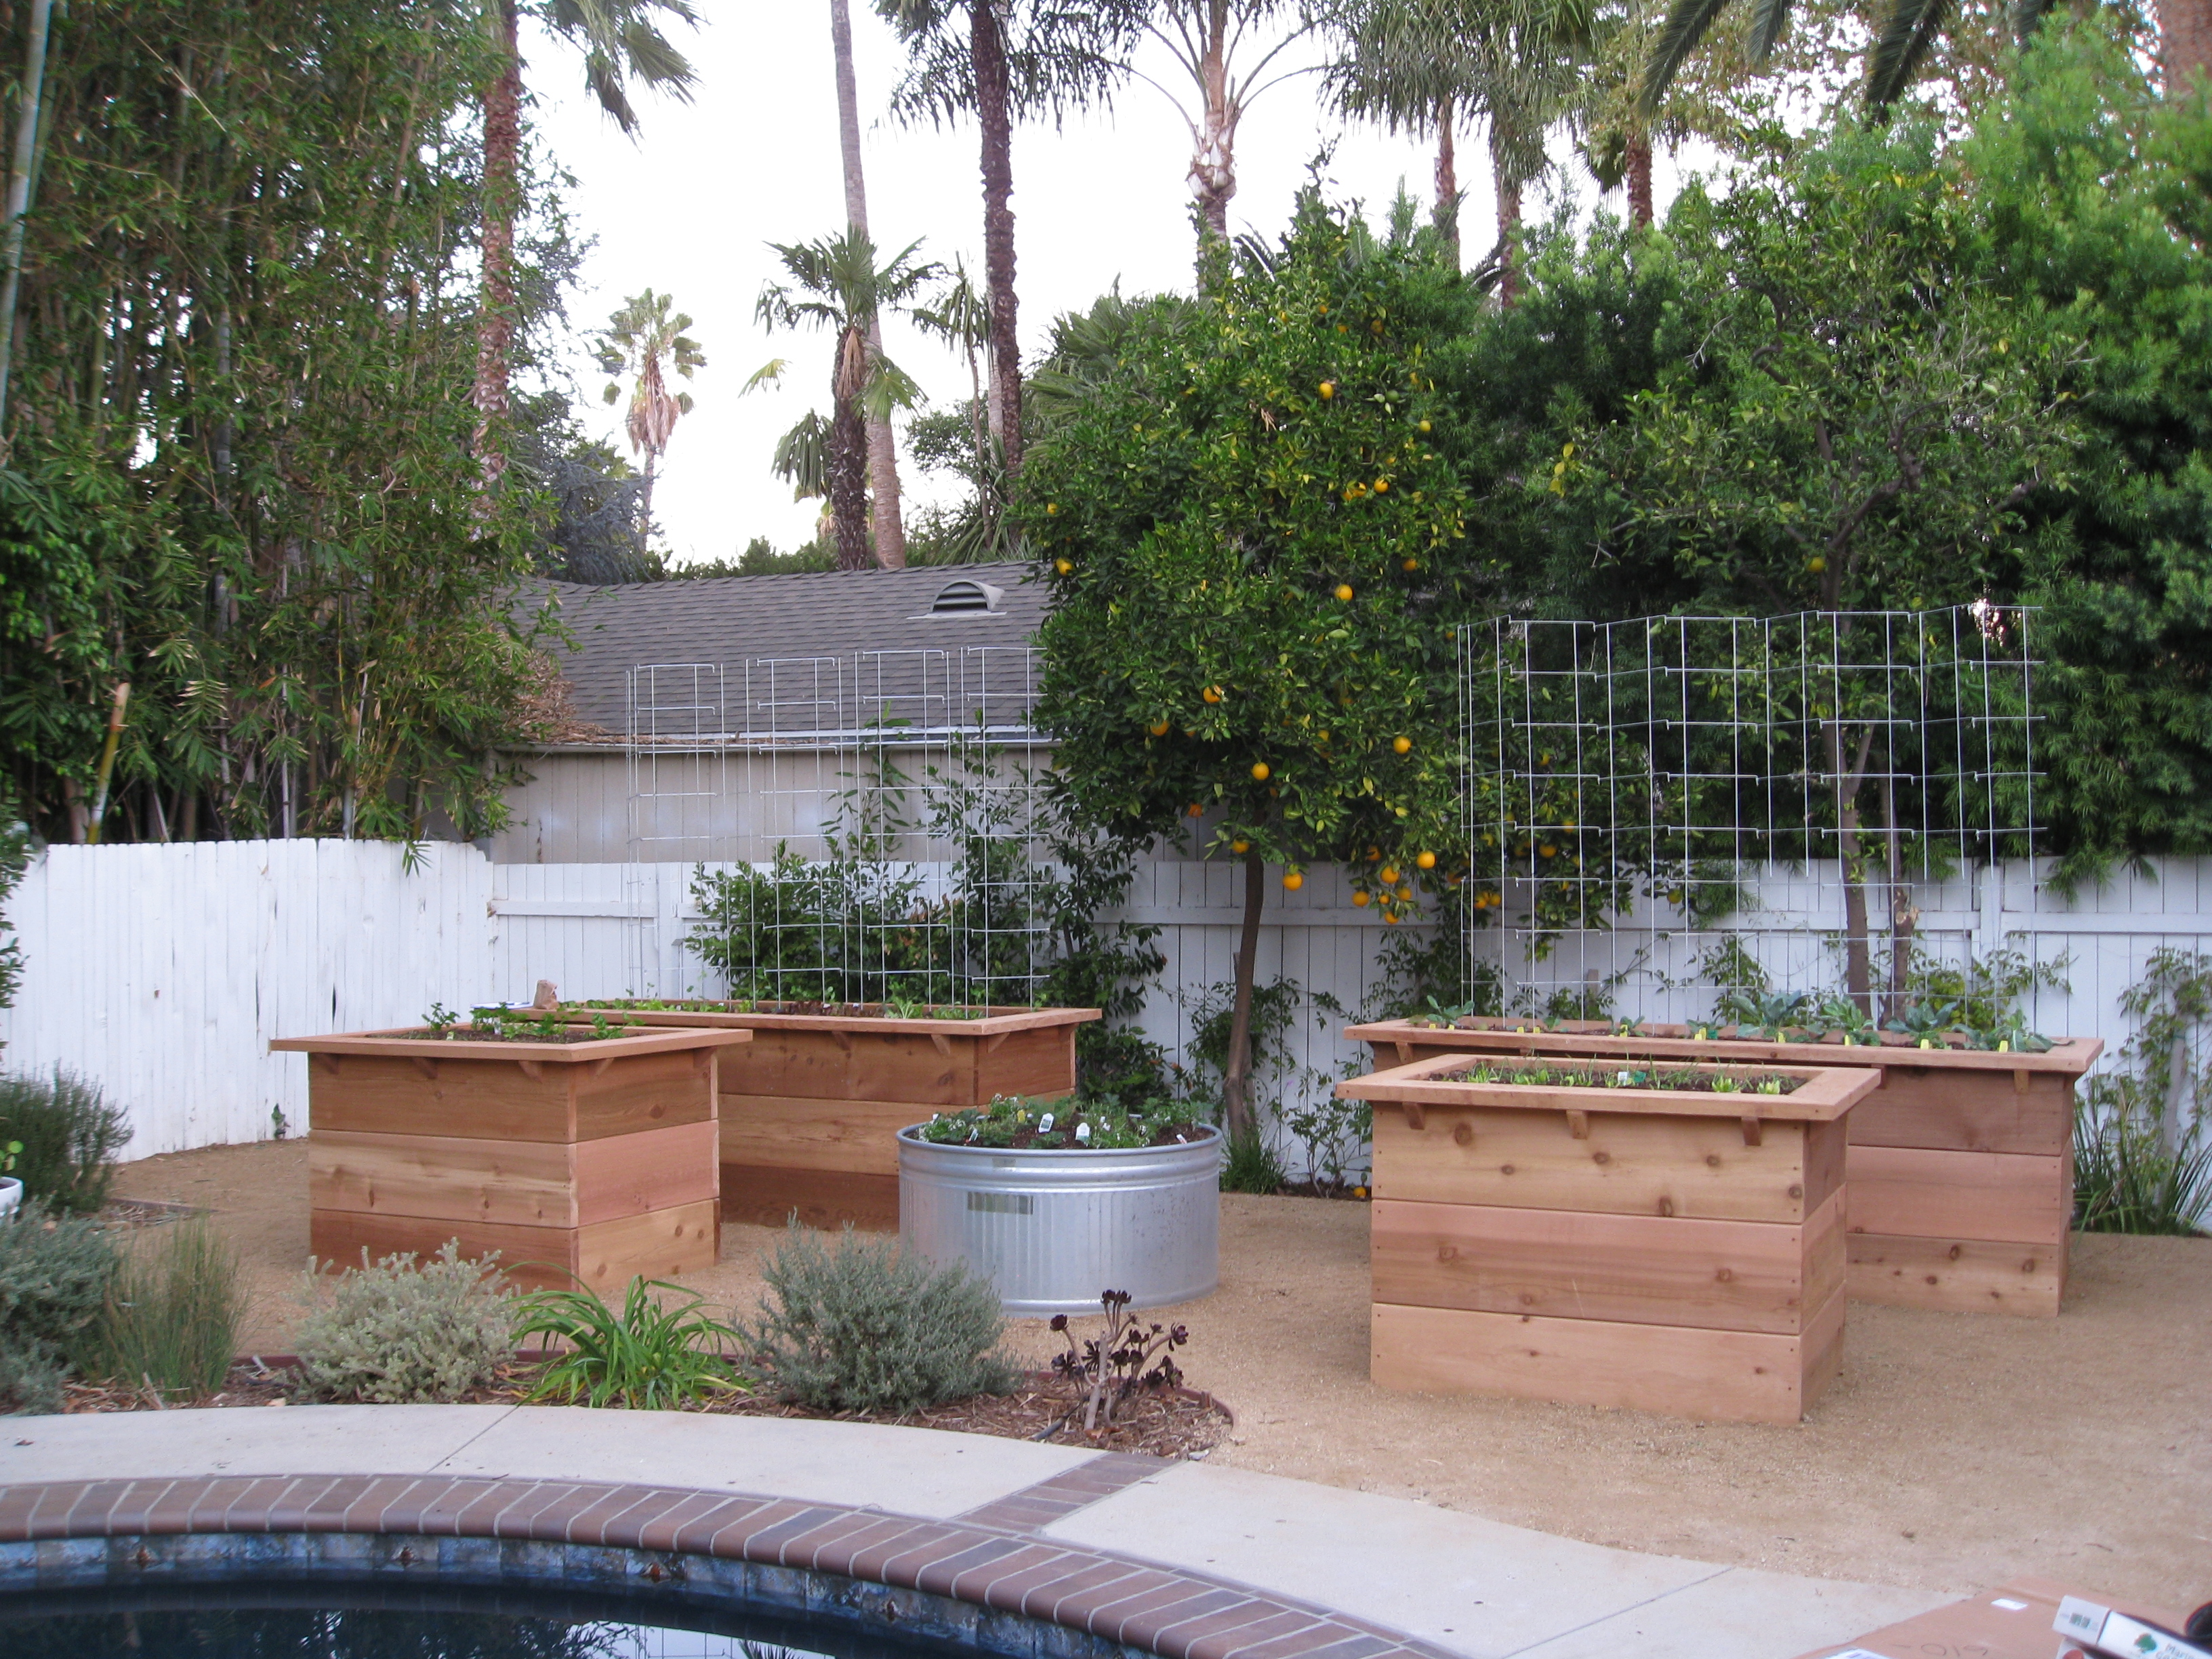 The finished garden, just planted with the homeowner.